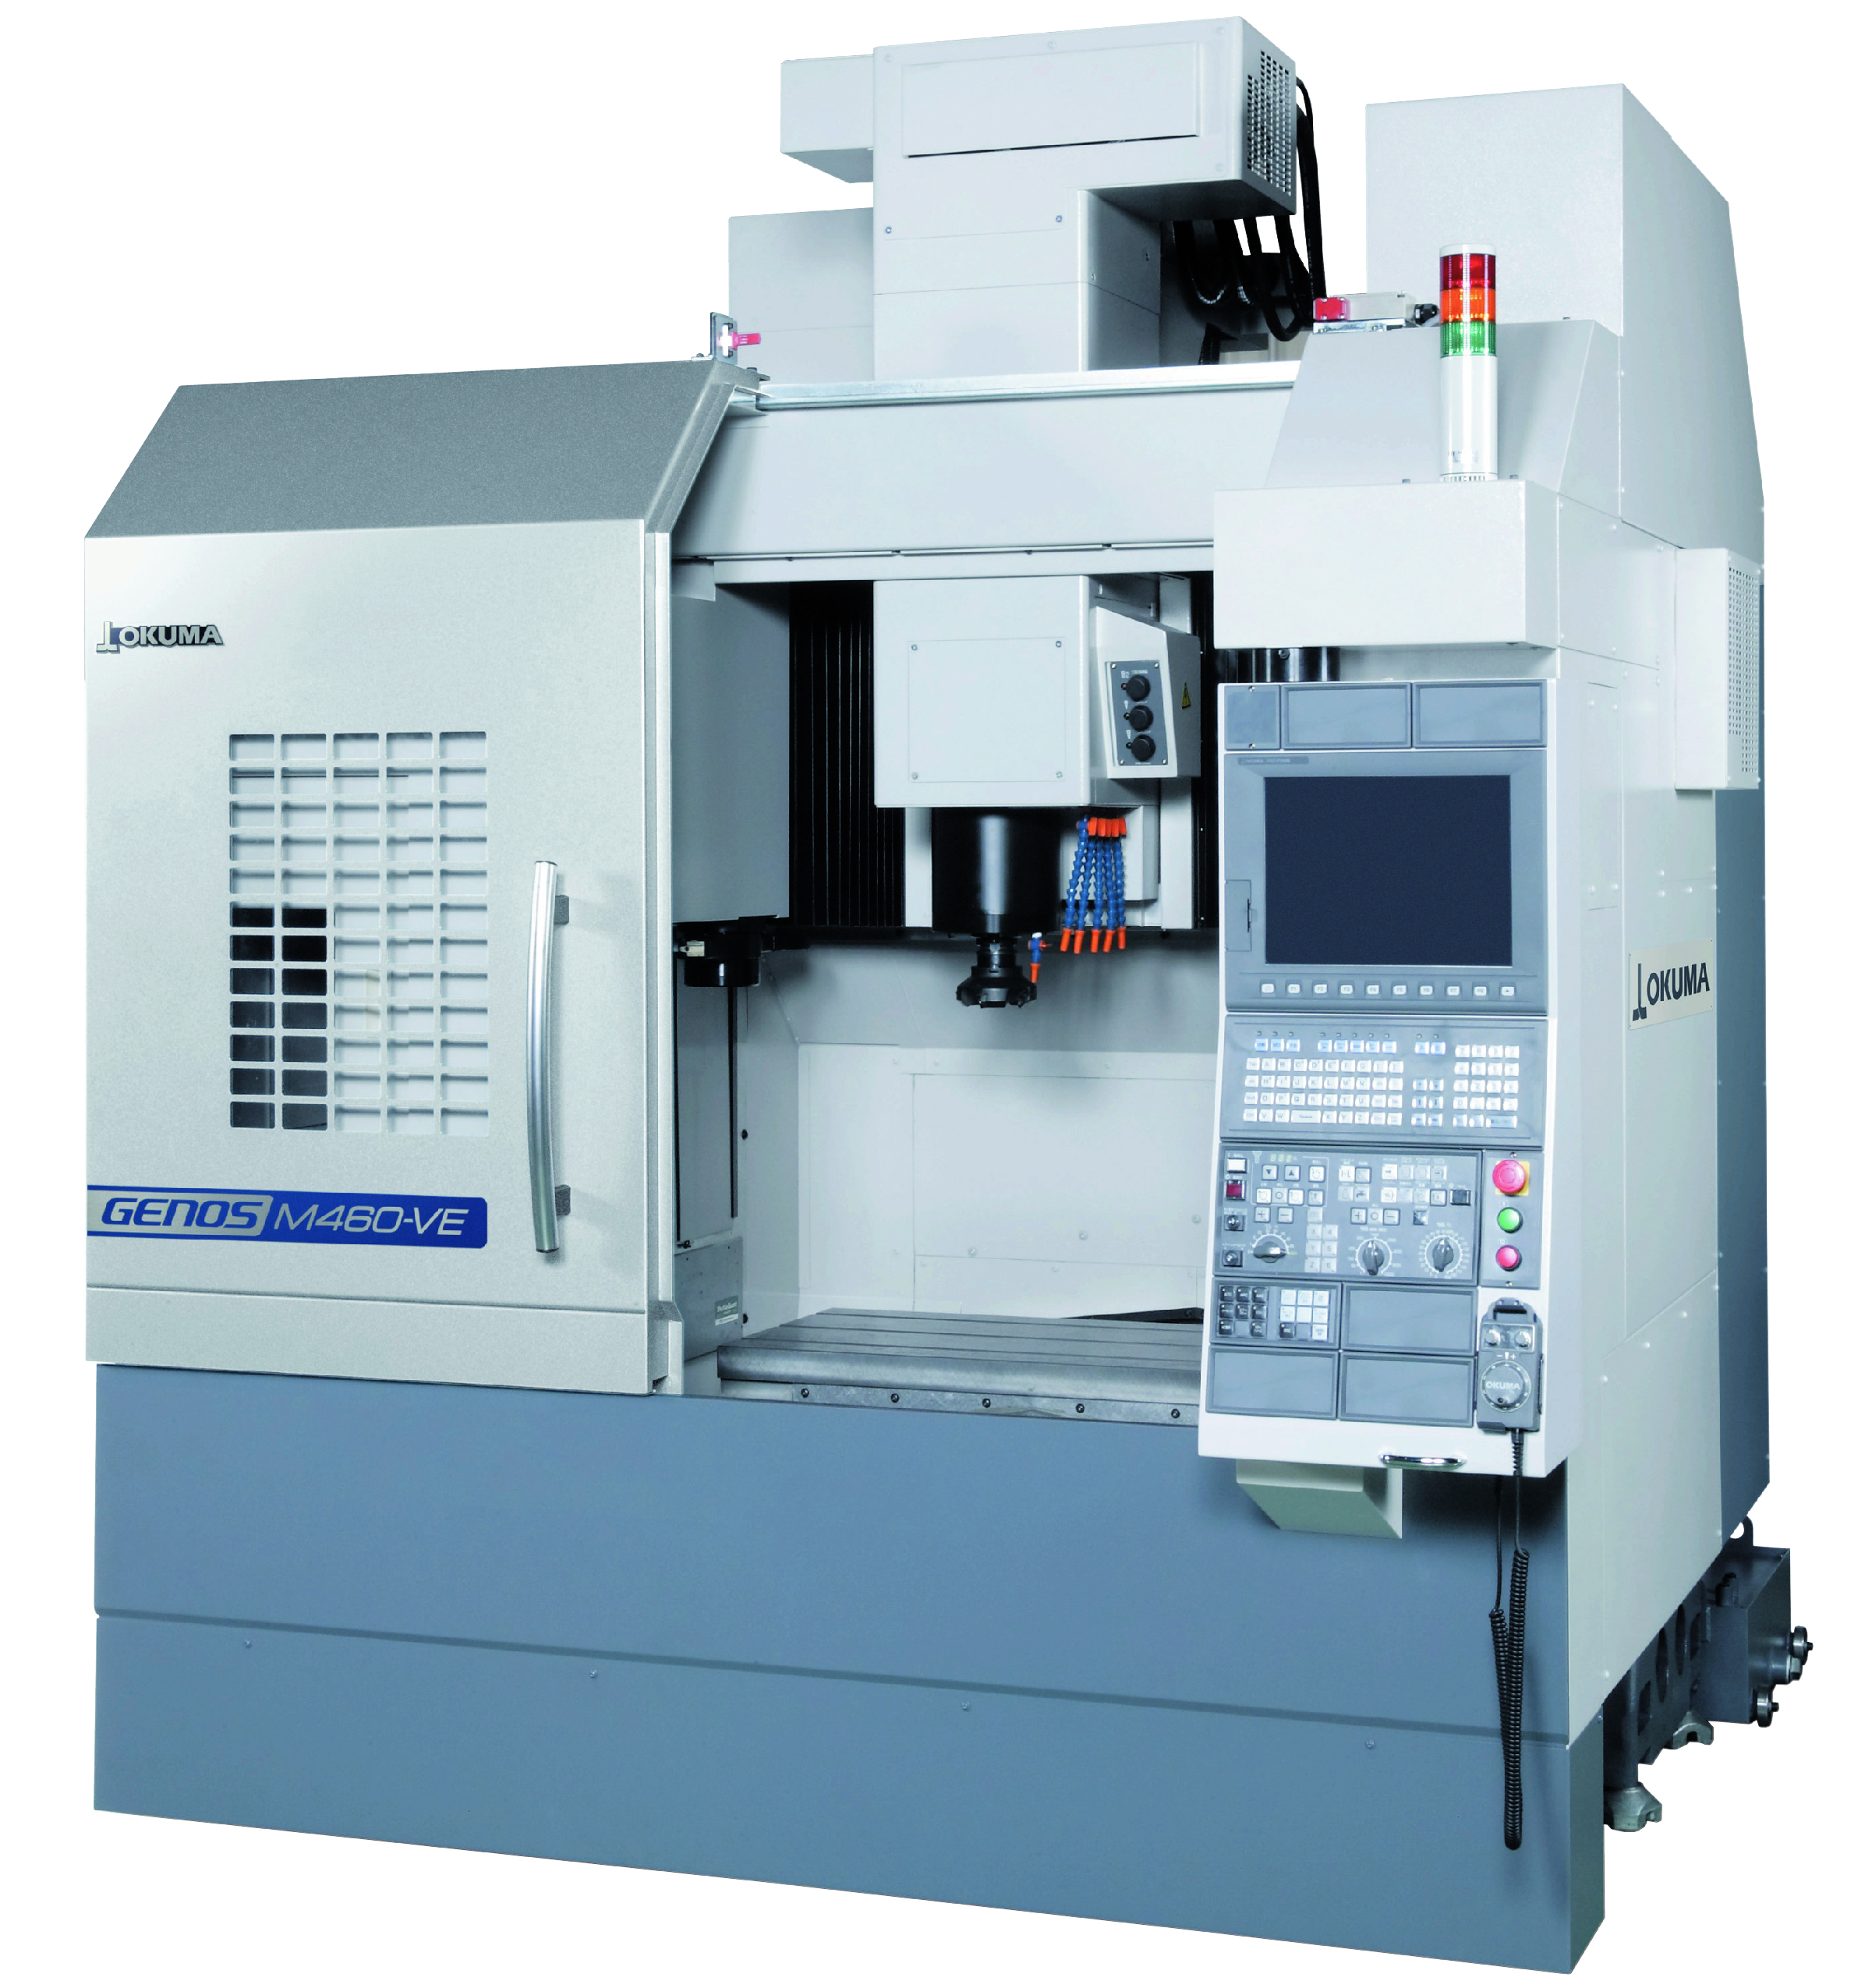 Equipped with THINC®-OSP control, the GENOS M-460V uses Machining Navi M-g and a 4th/5th axis Nikken table with Hexagon Metrology gauging.(Click on photo to enlarge it)